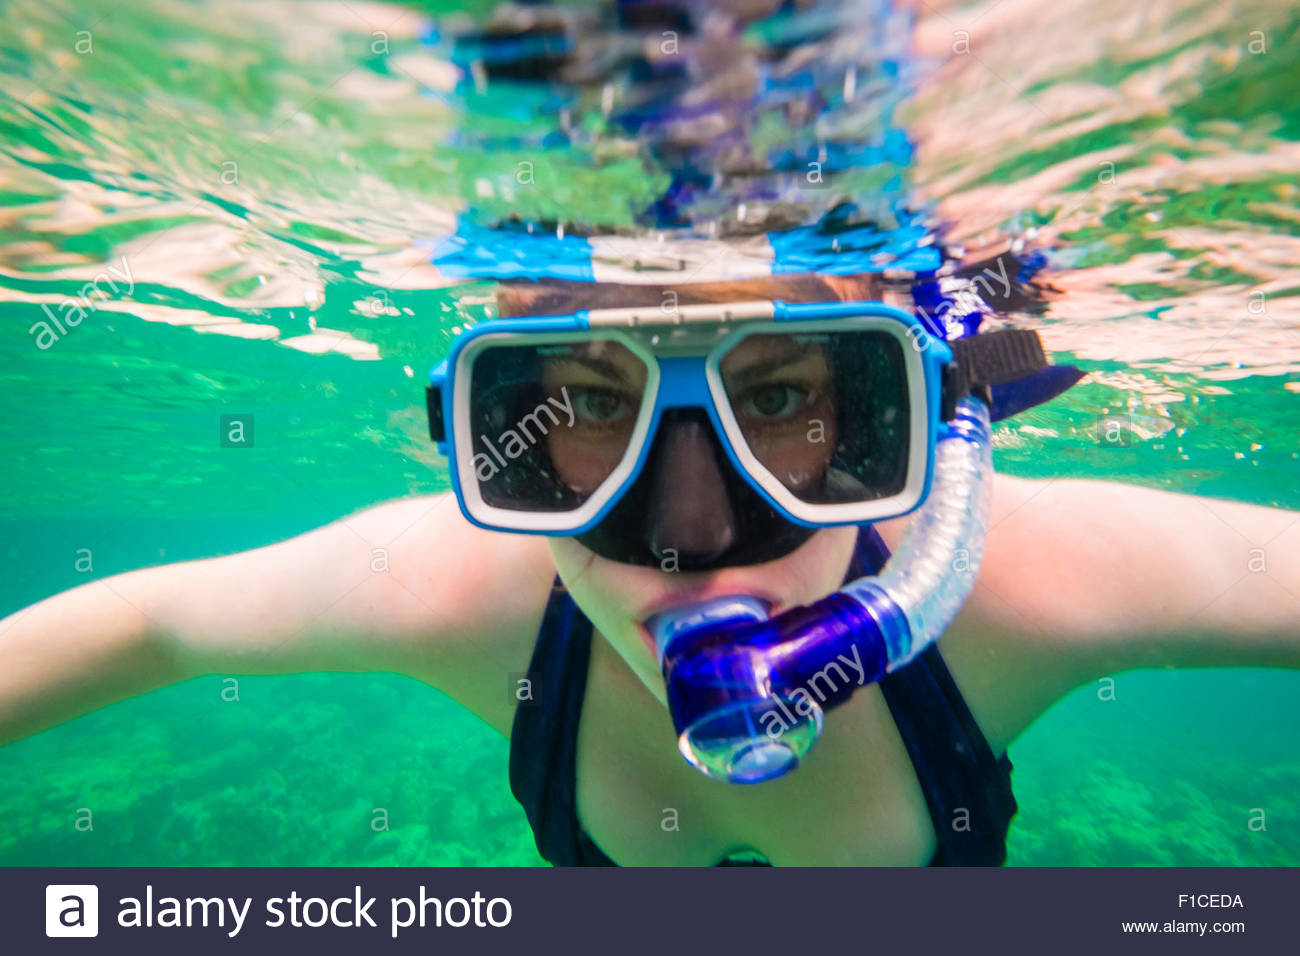 Woman snorkeling off the coast of Coron Island at Coral Eden, Palawan, Philippines - Stock Image